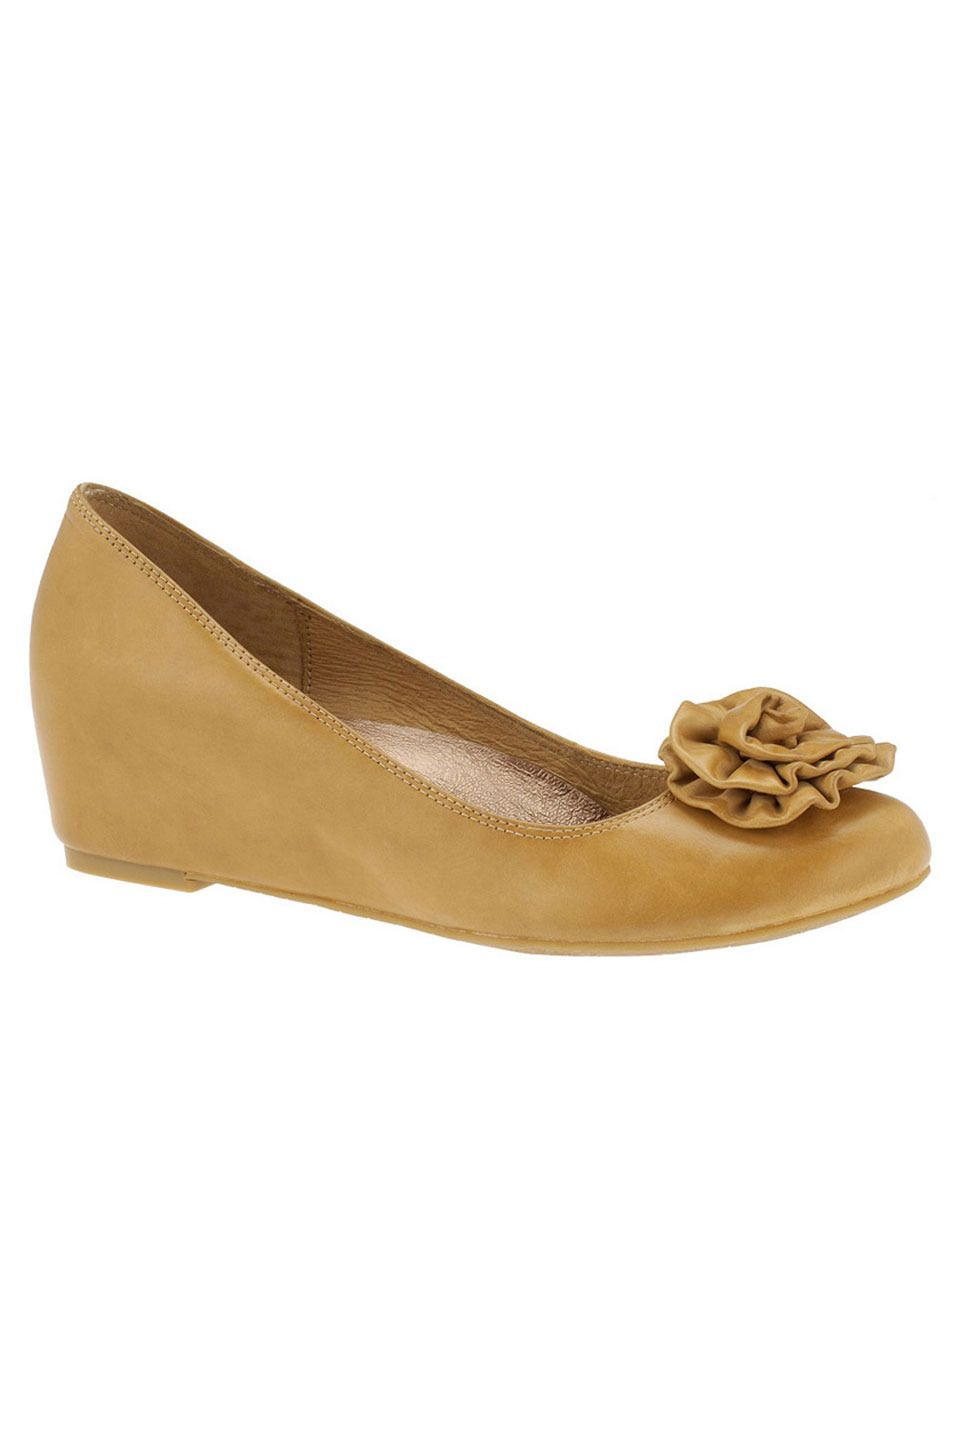 Hush Puppies Bud Shoes In Cream Leather Fashion Cute Shoes Shoes